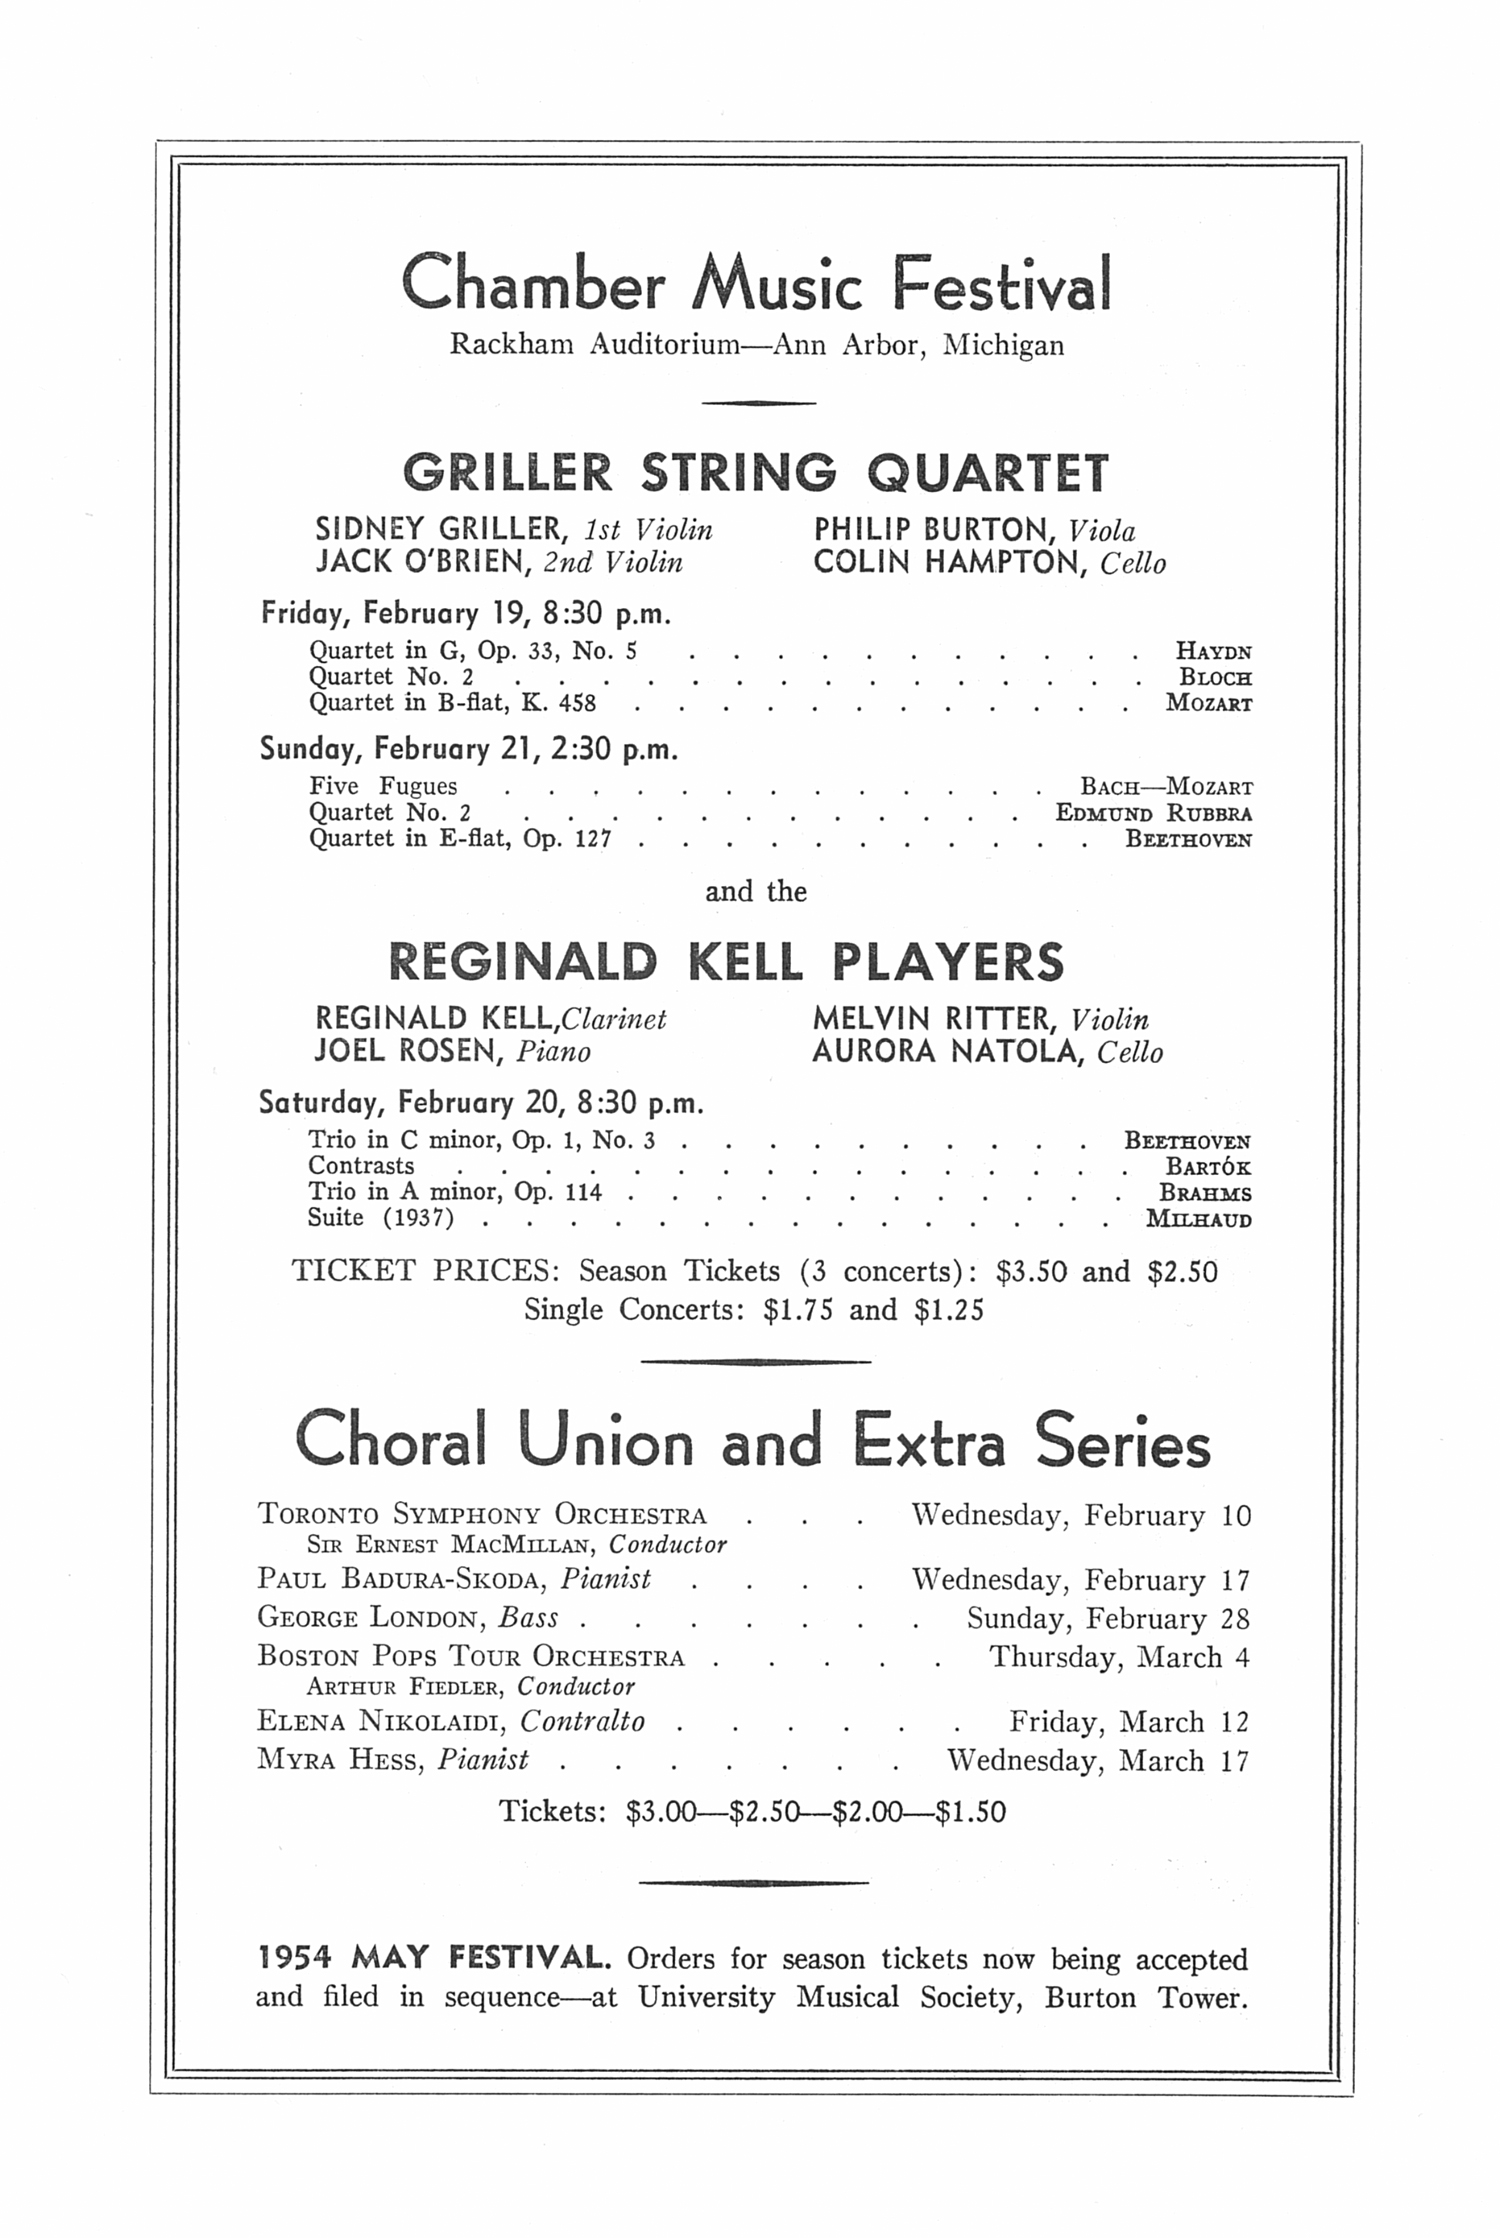 UMS Concert Program, January 10, 1954: Eight Annual Extra Concert Series -- Marian Anderson image